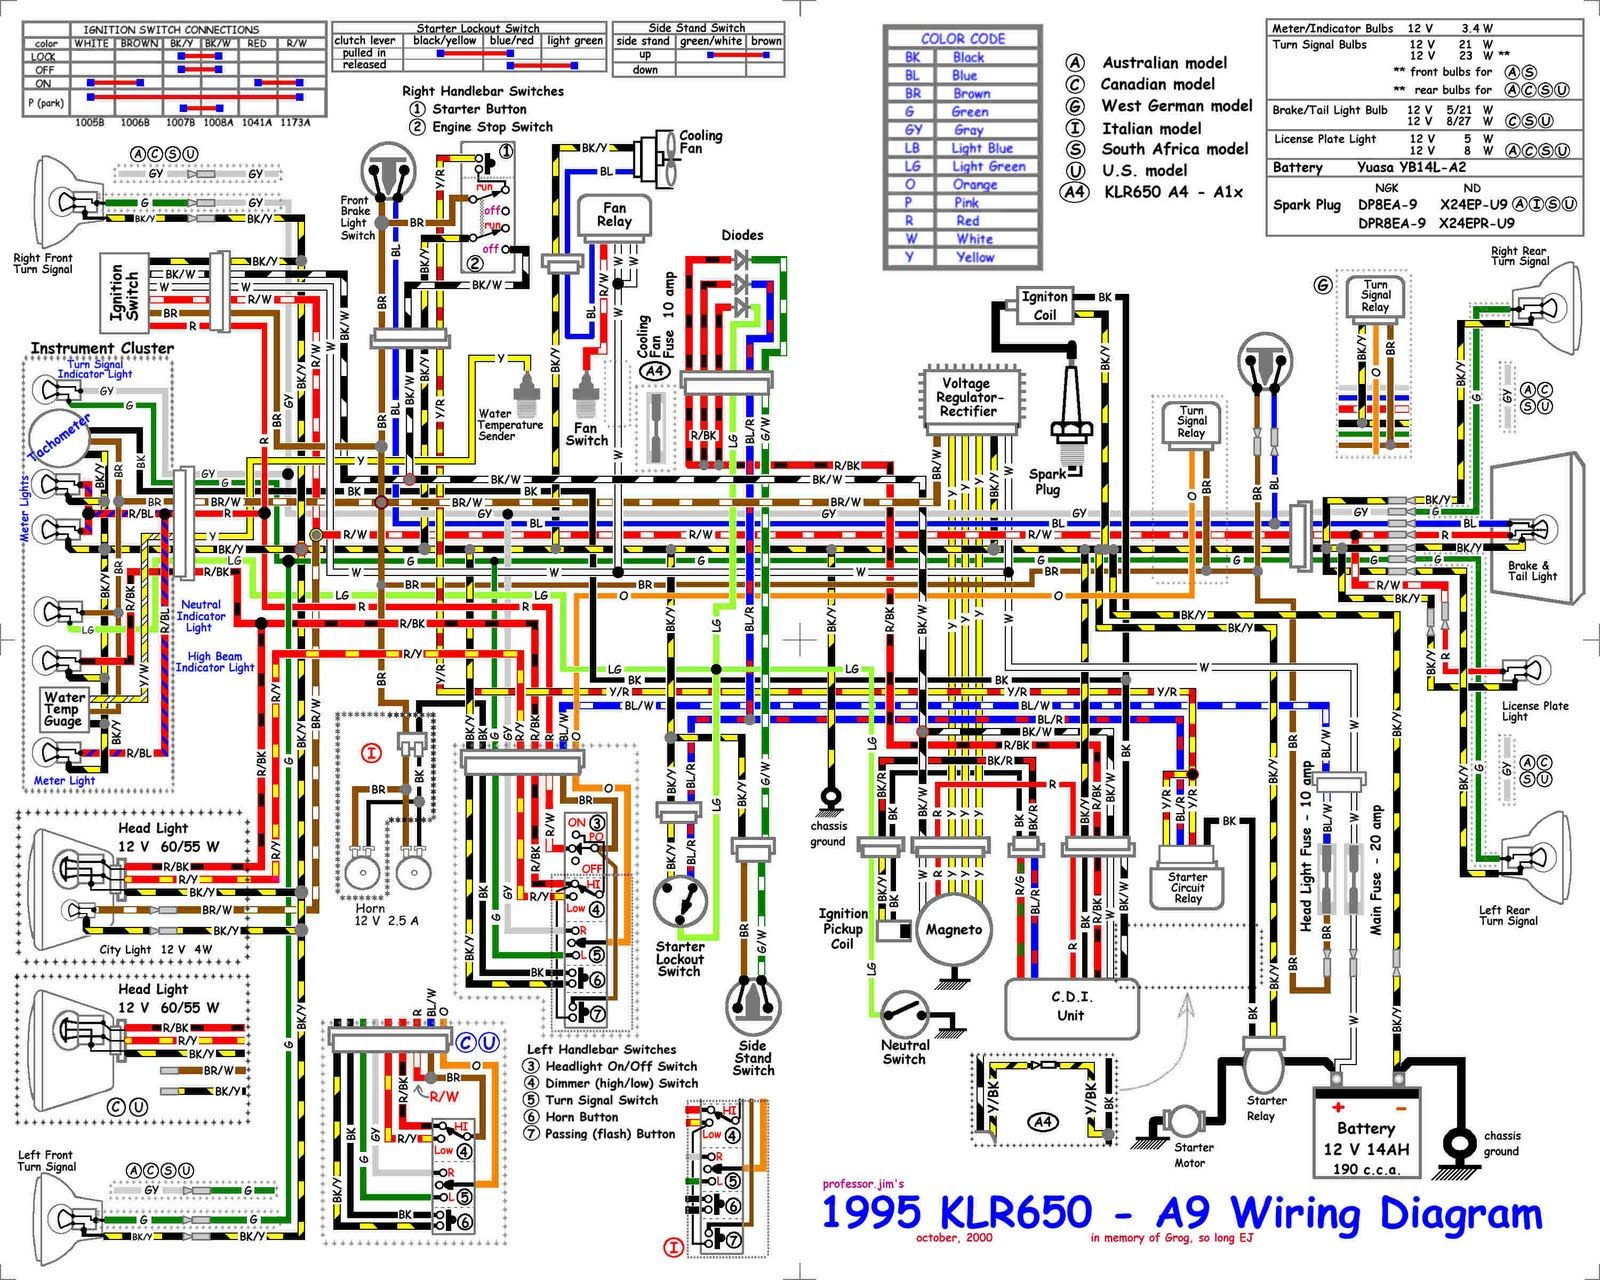 hight resolution of 1998 chevy wiring diagram wiring diagram 1998 chevy cavalier wiring diagram 1998 chevrolet wiring diagram